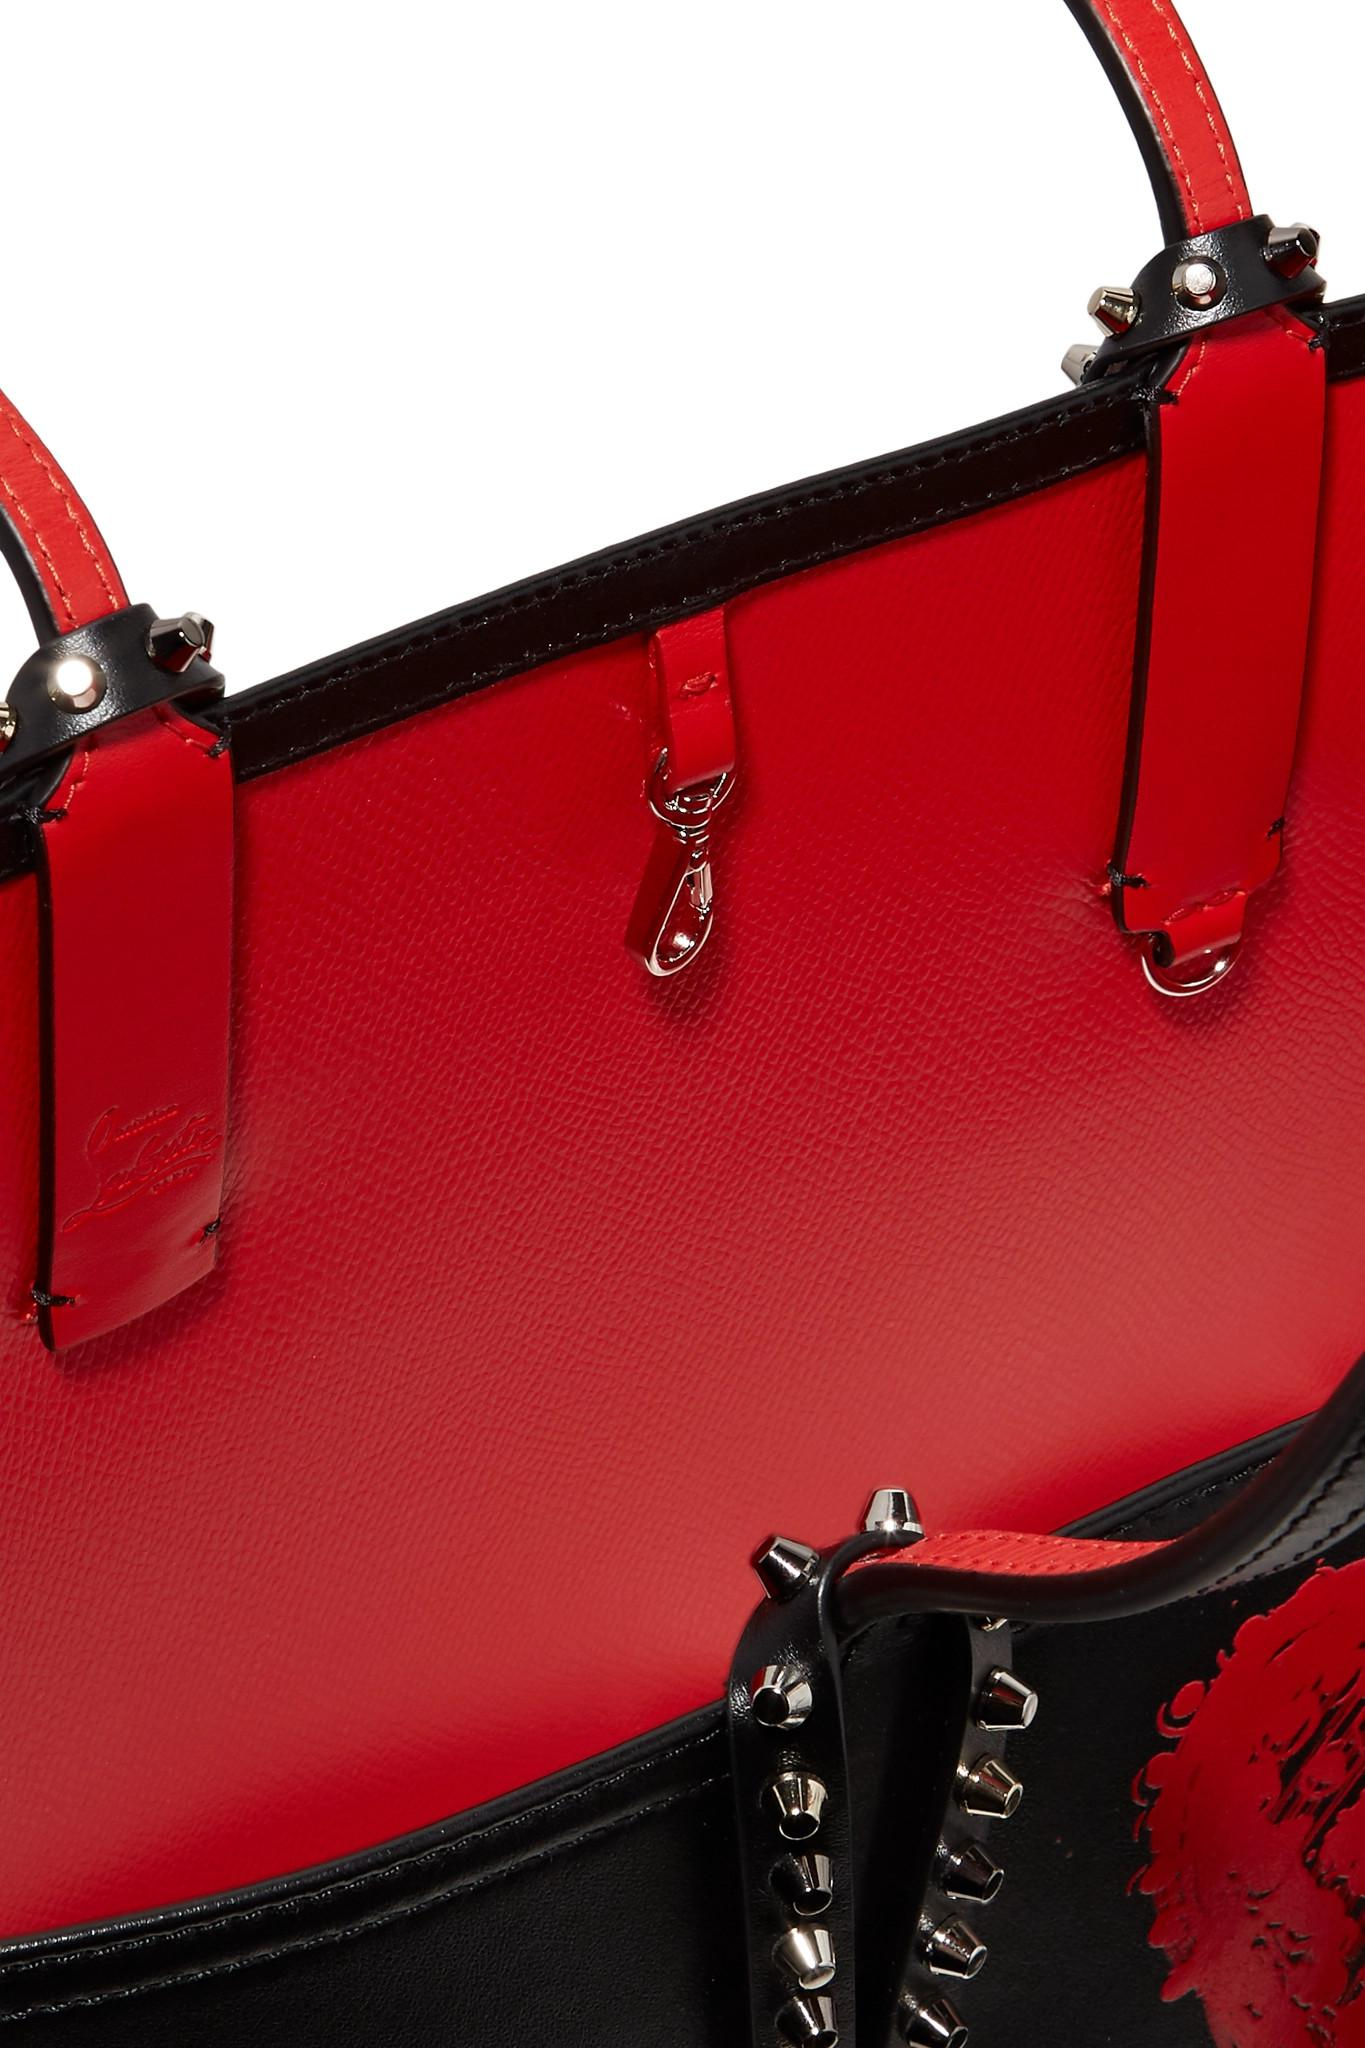 Cabata Studded Printed Leather Tote - Red Christian Louboutin piItJr